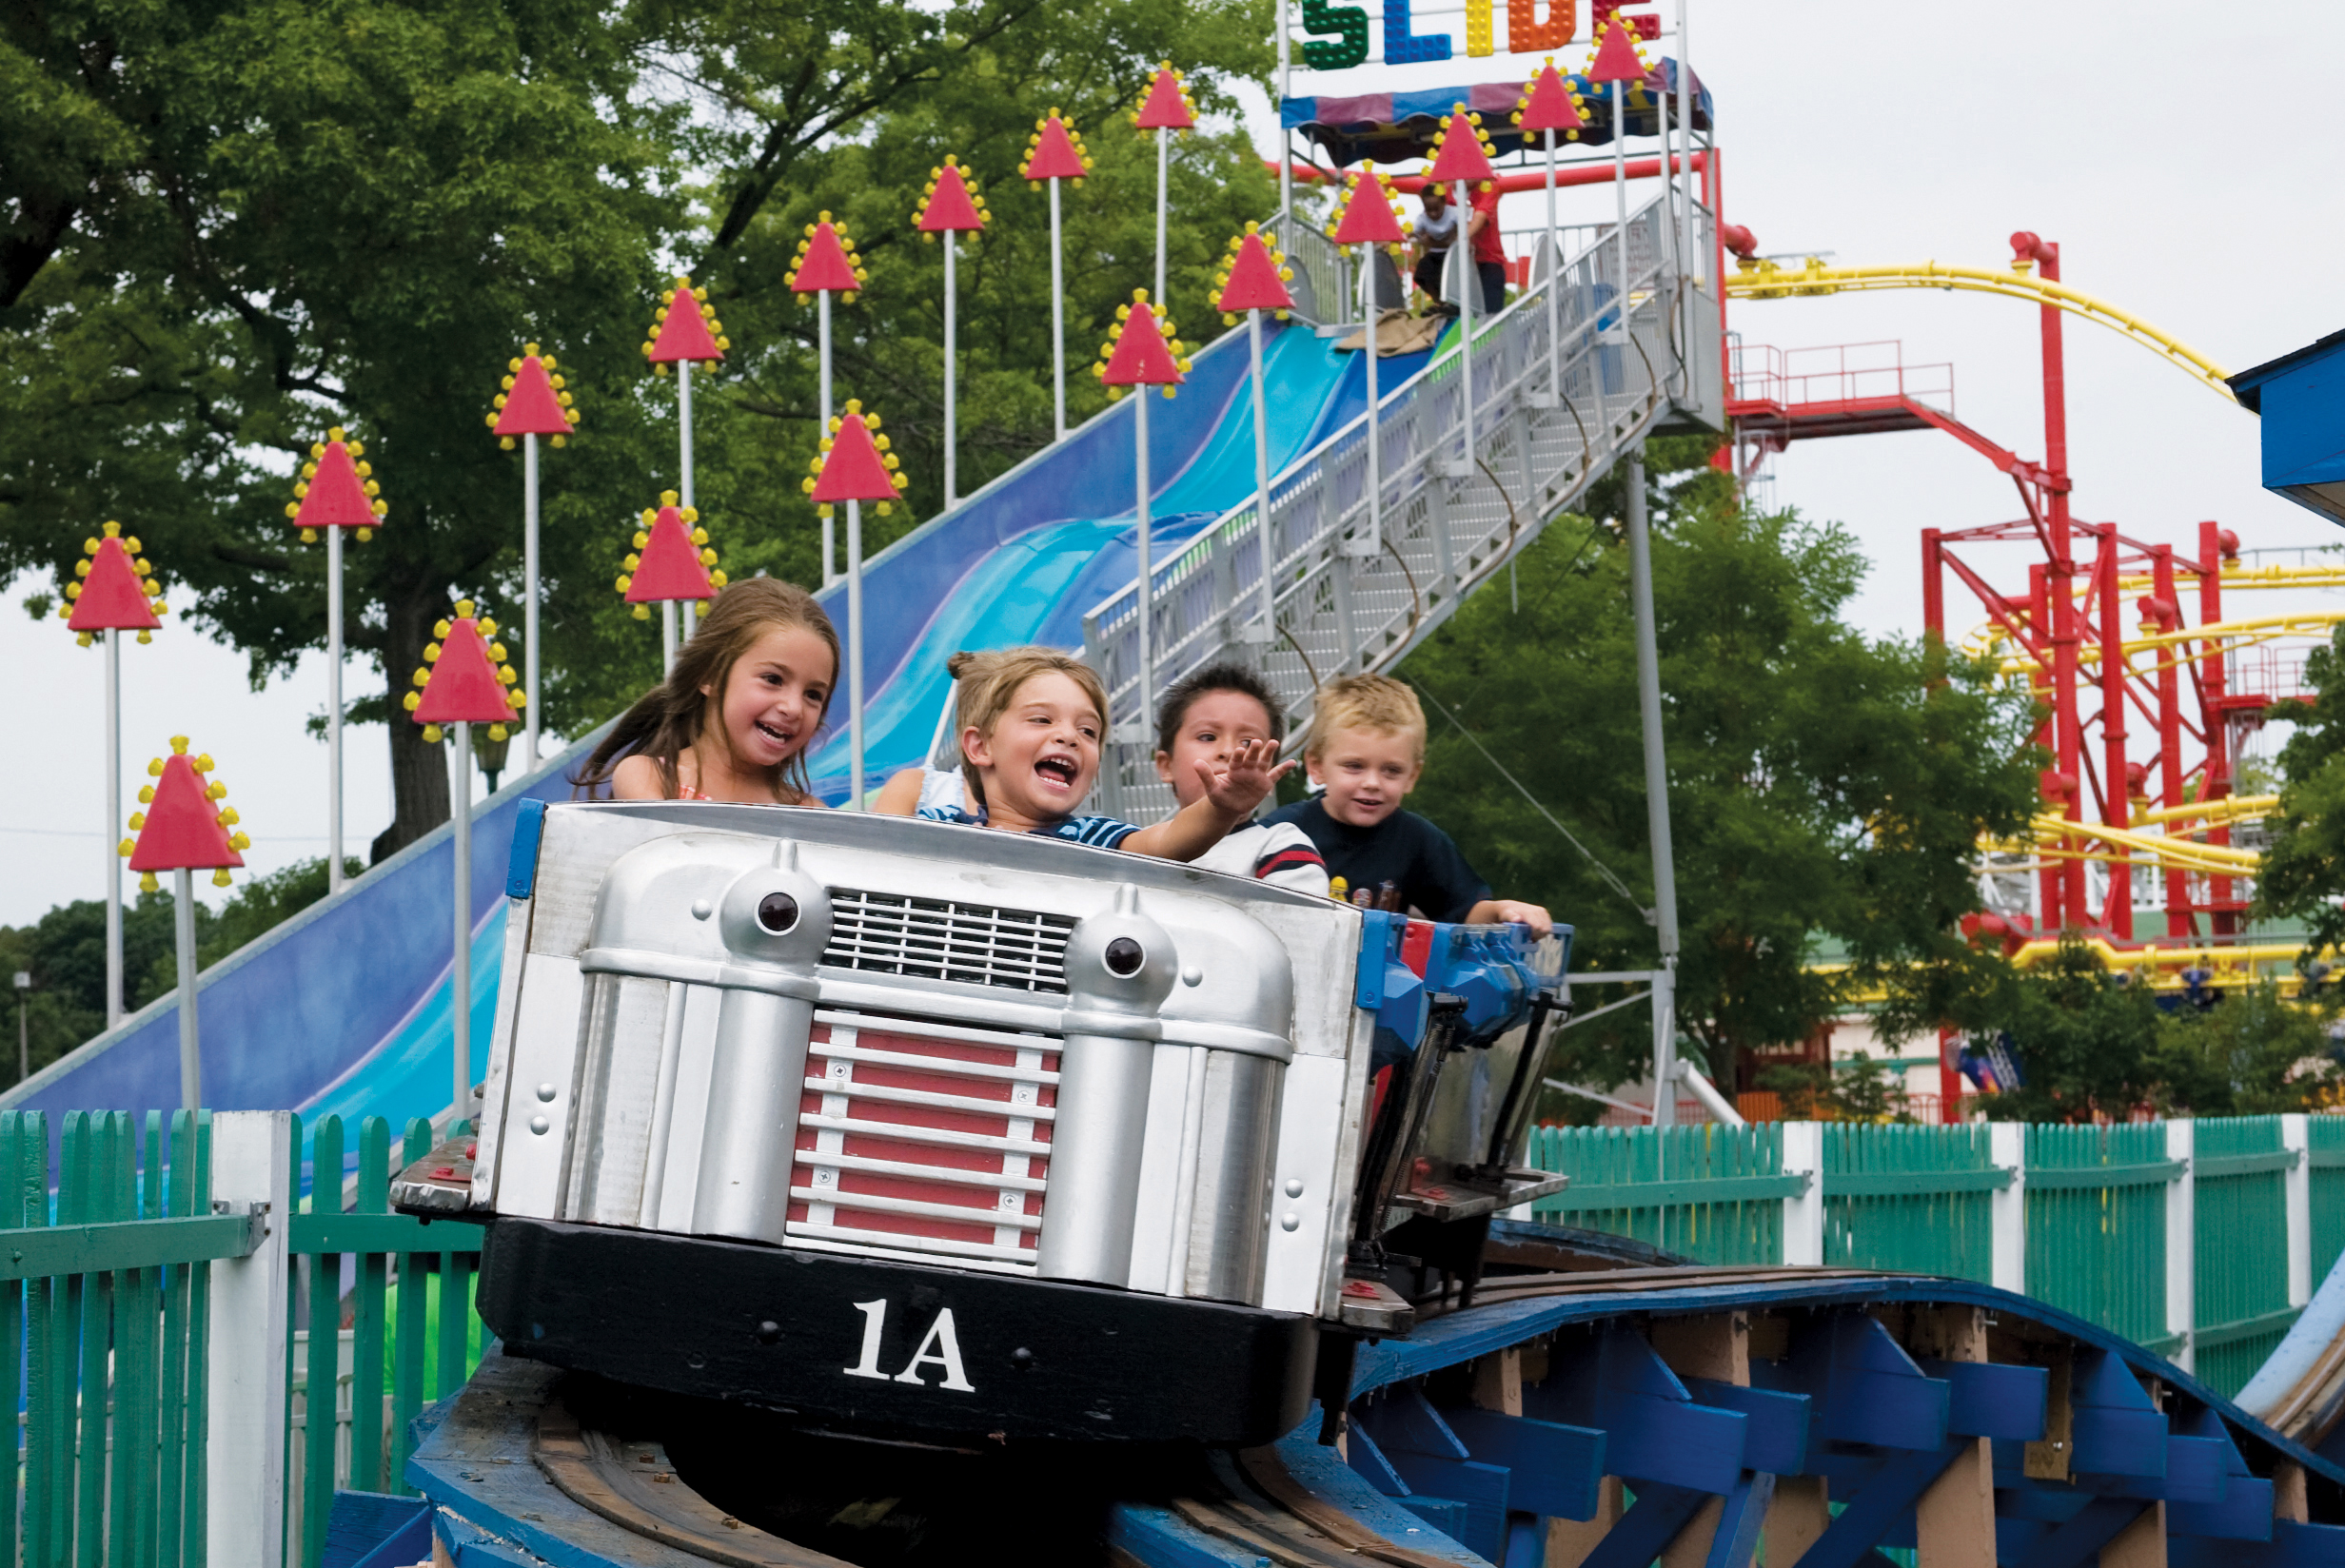 Kiddy Coaster at Rye Playland